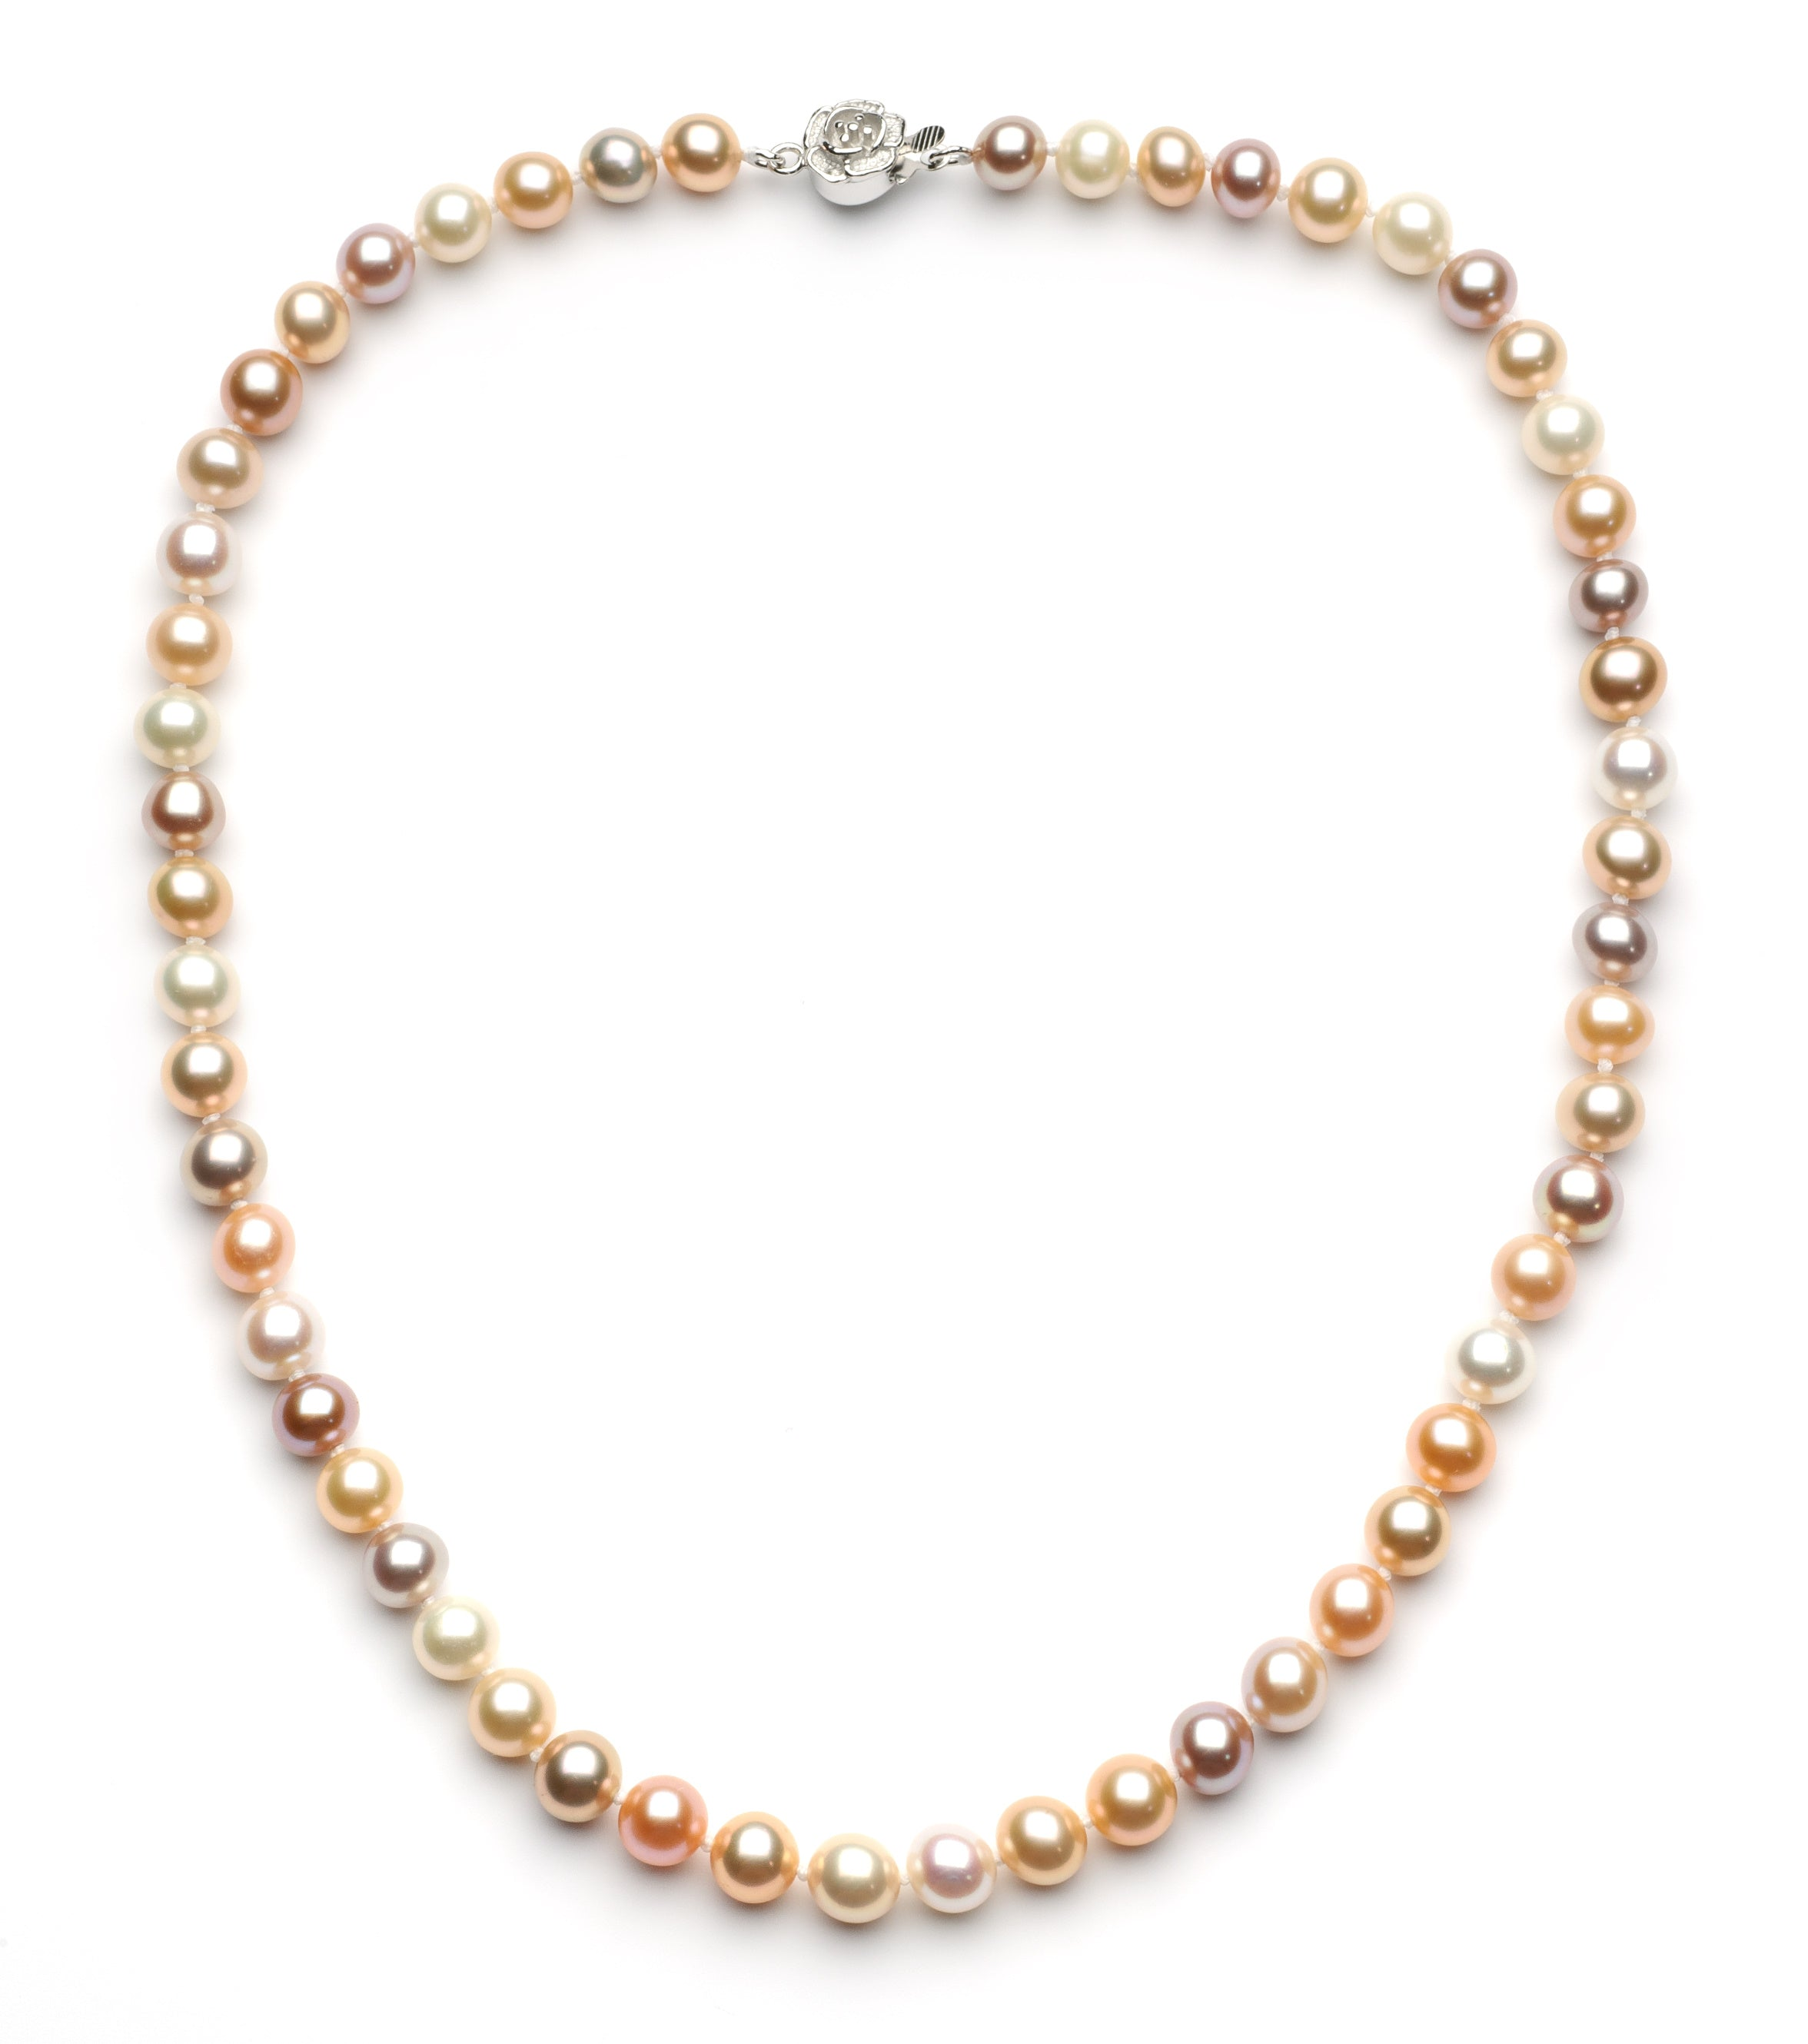 7.0-8.0 mm Multi-color Freshwater Pearl Necklace